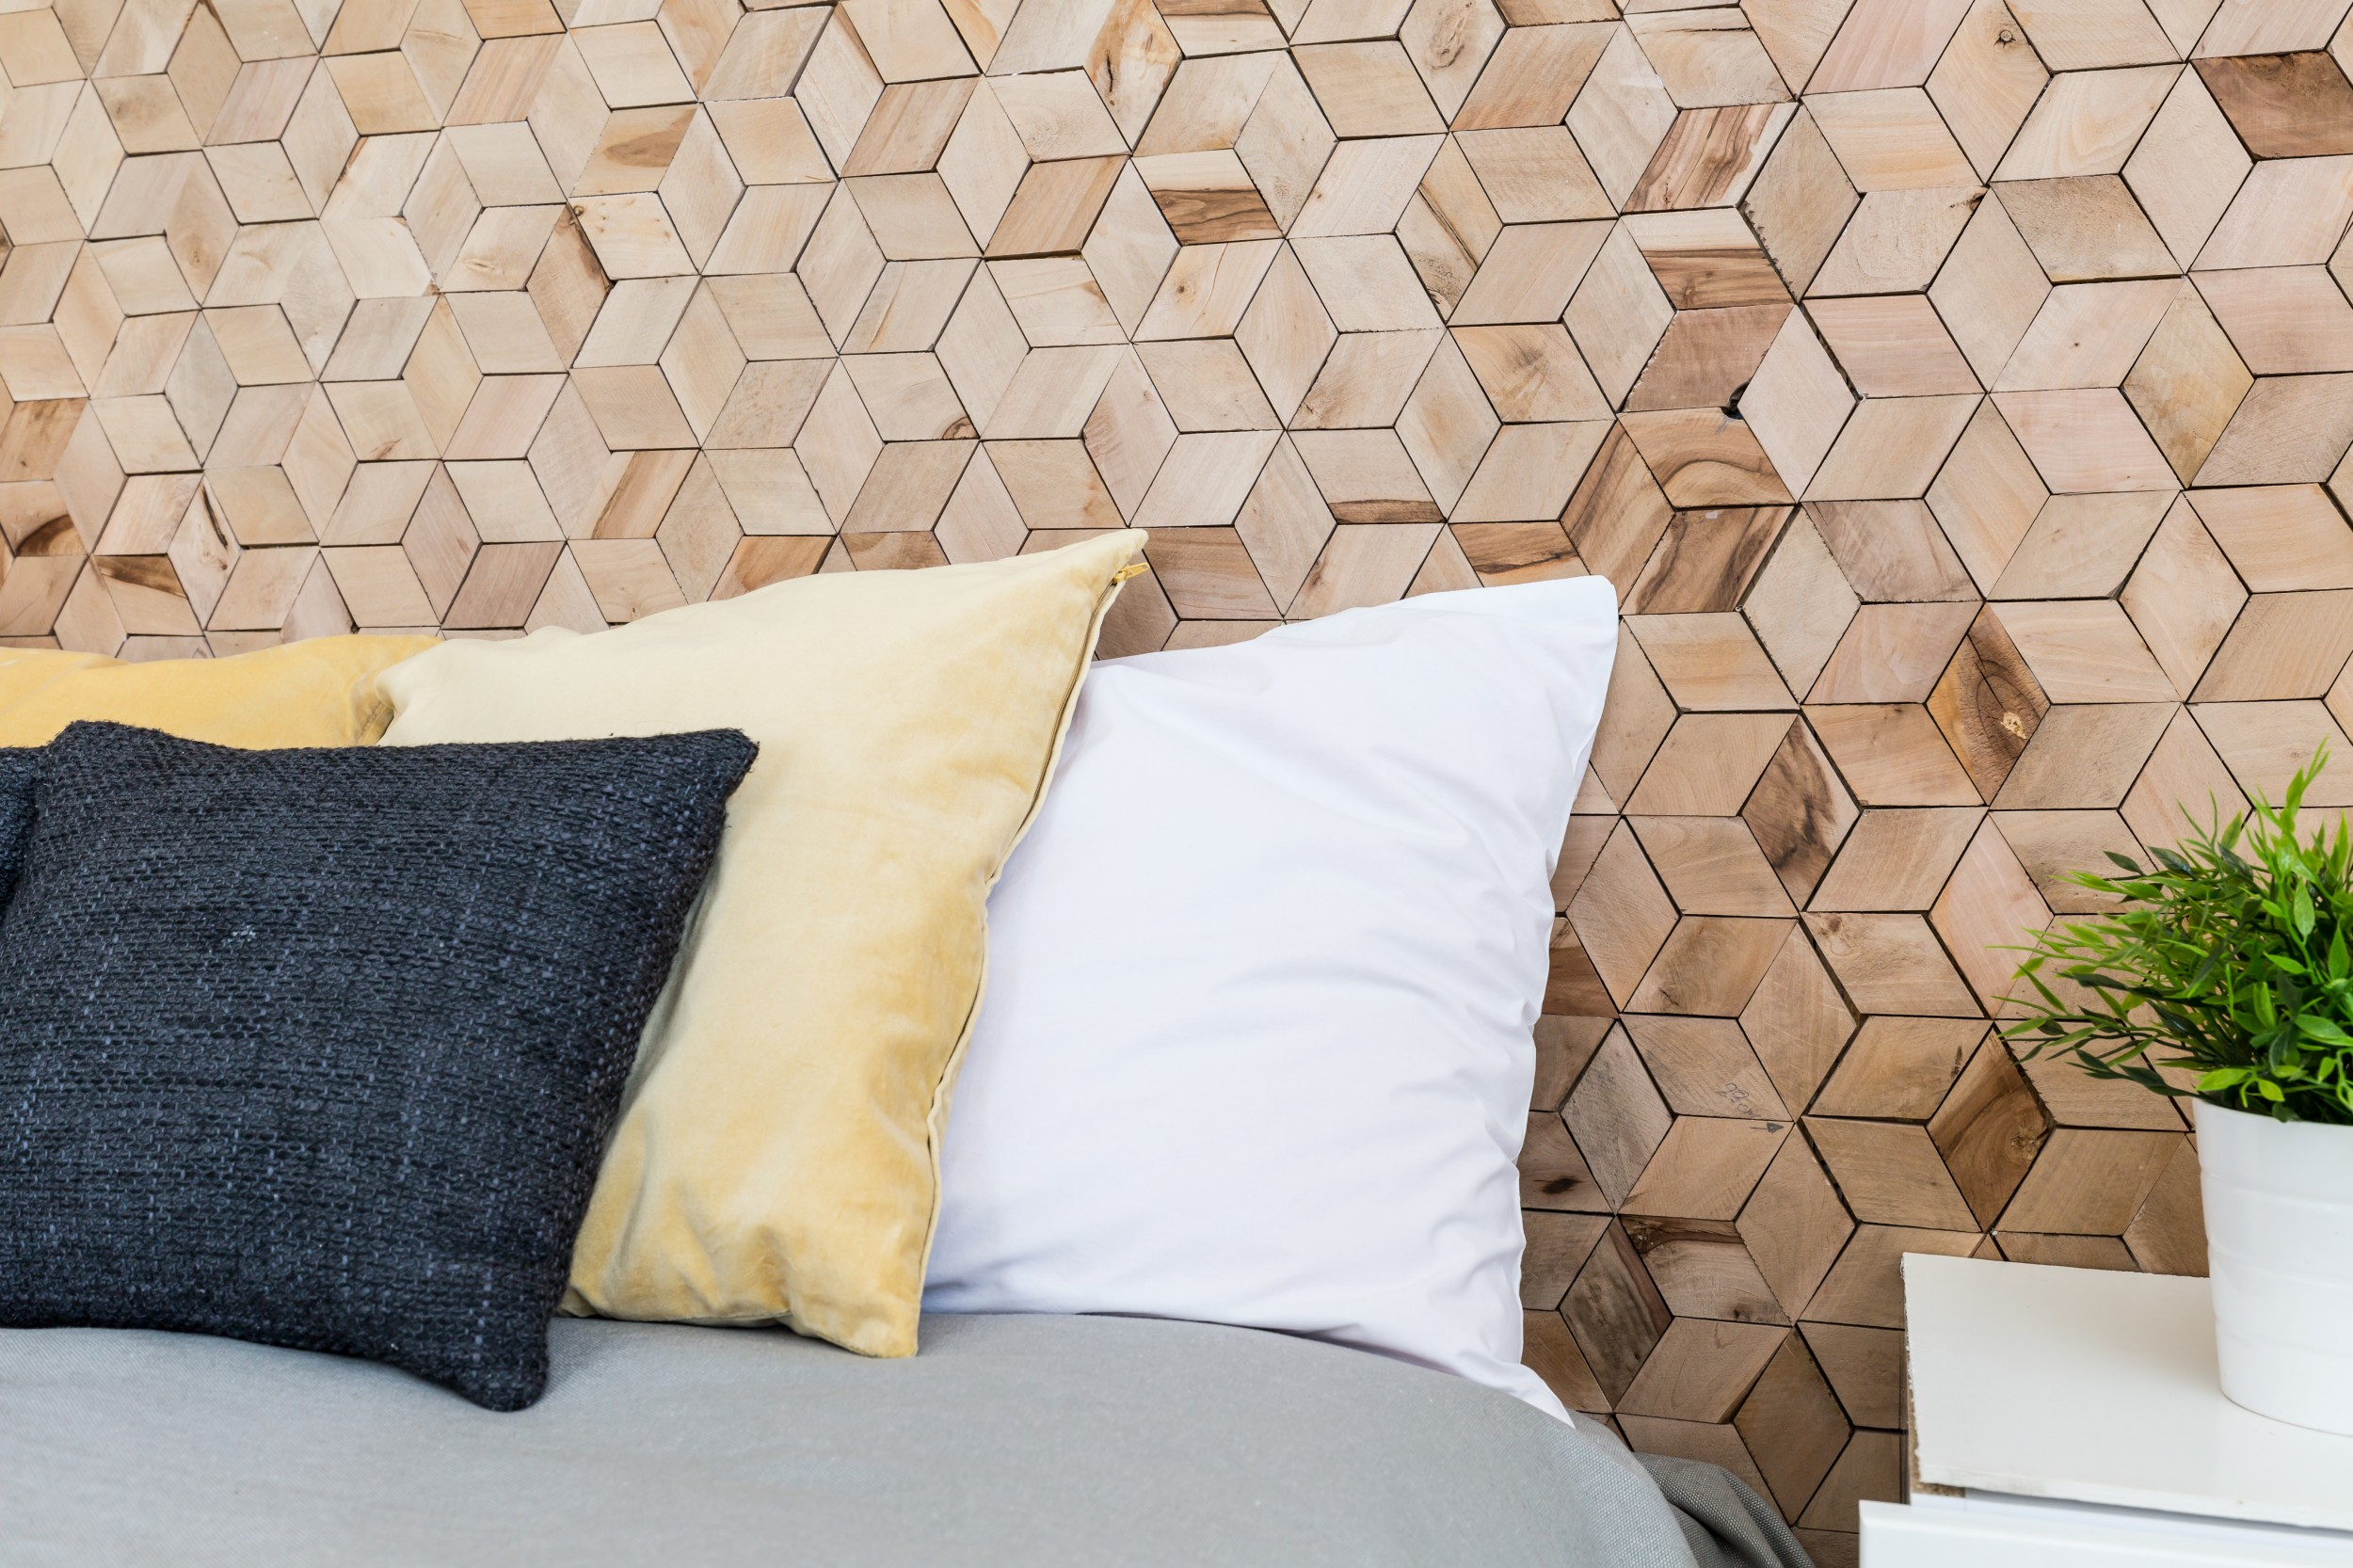 Five eco-friendly interiors to try in your home